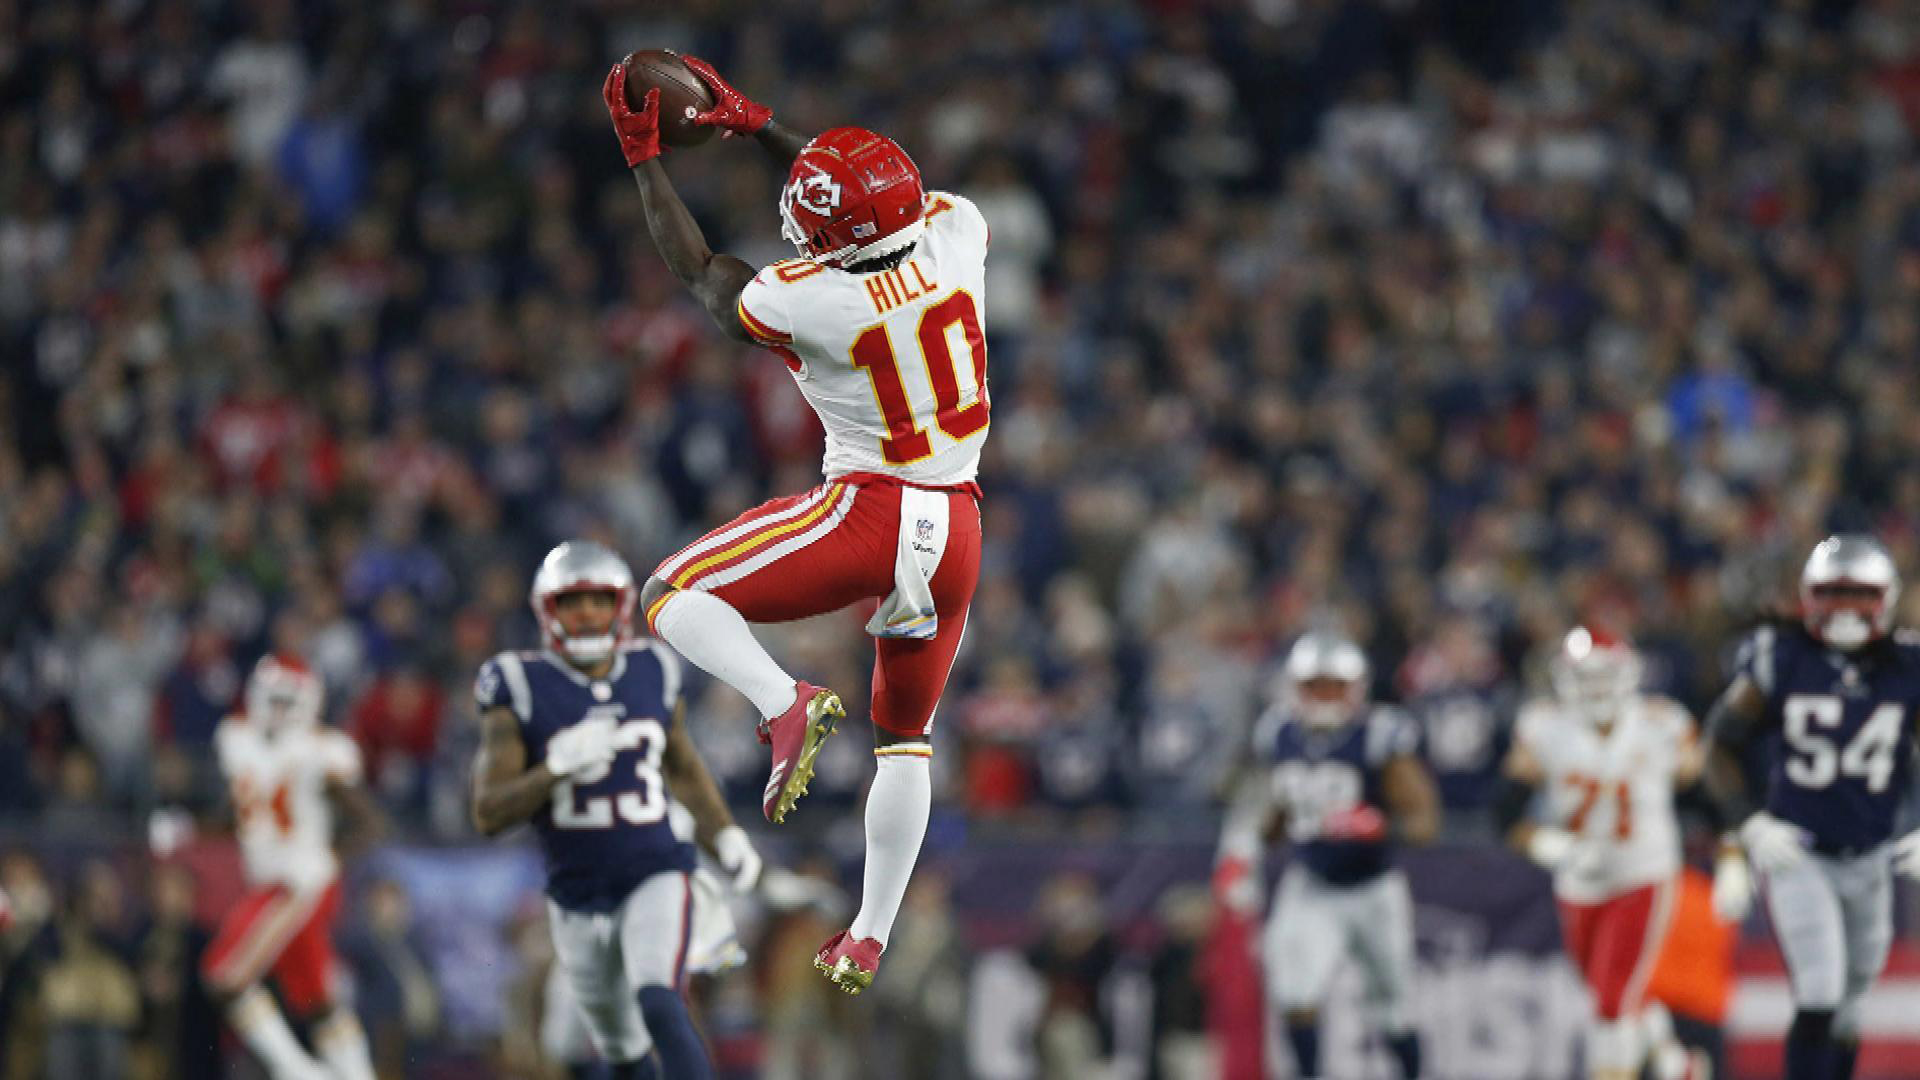 Download Tyreek Hill Is Jumping High To Catch A Ball Wearing White Red Sports Dress Hd Tyreek Hill